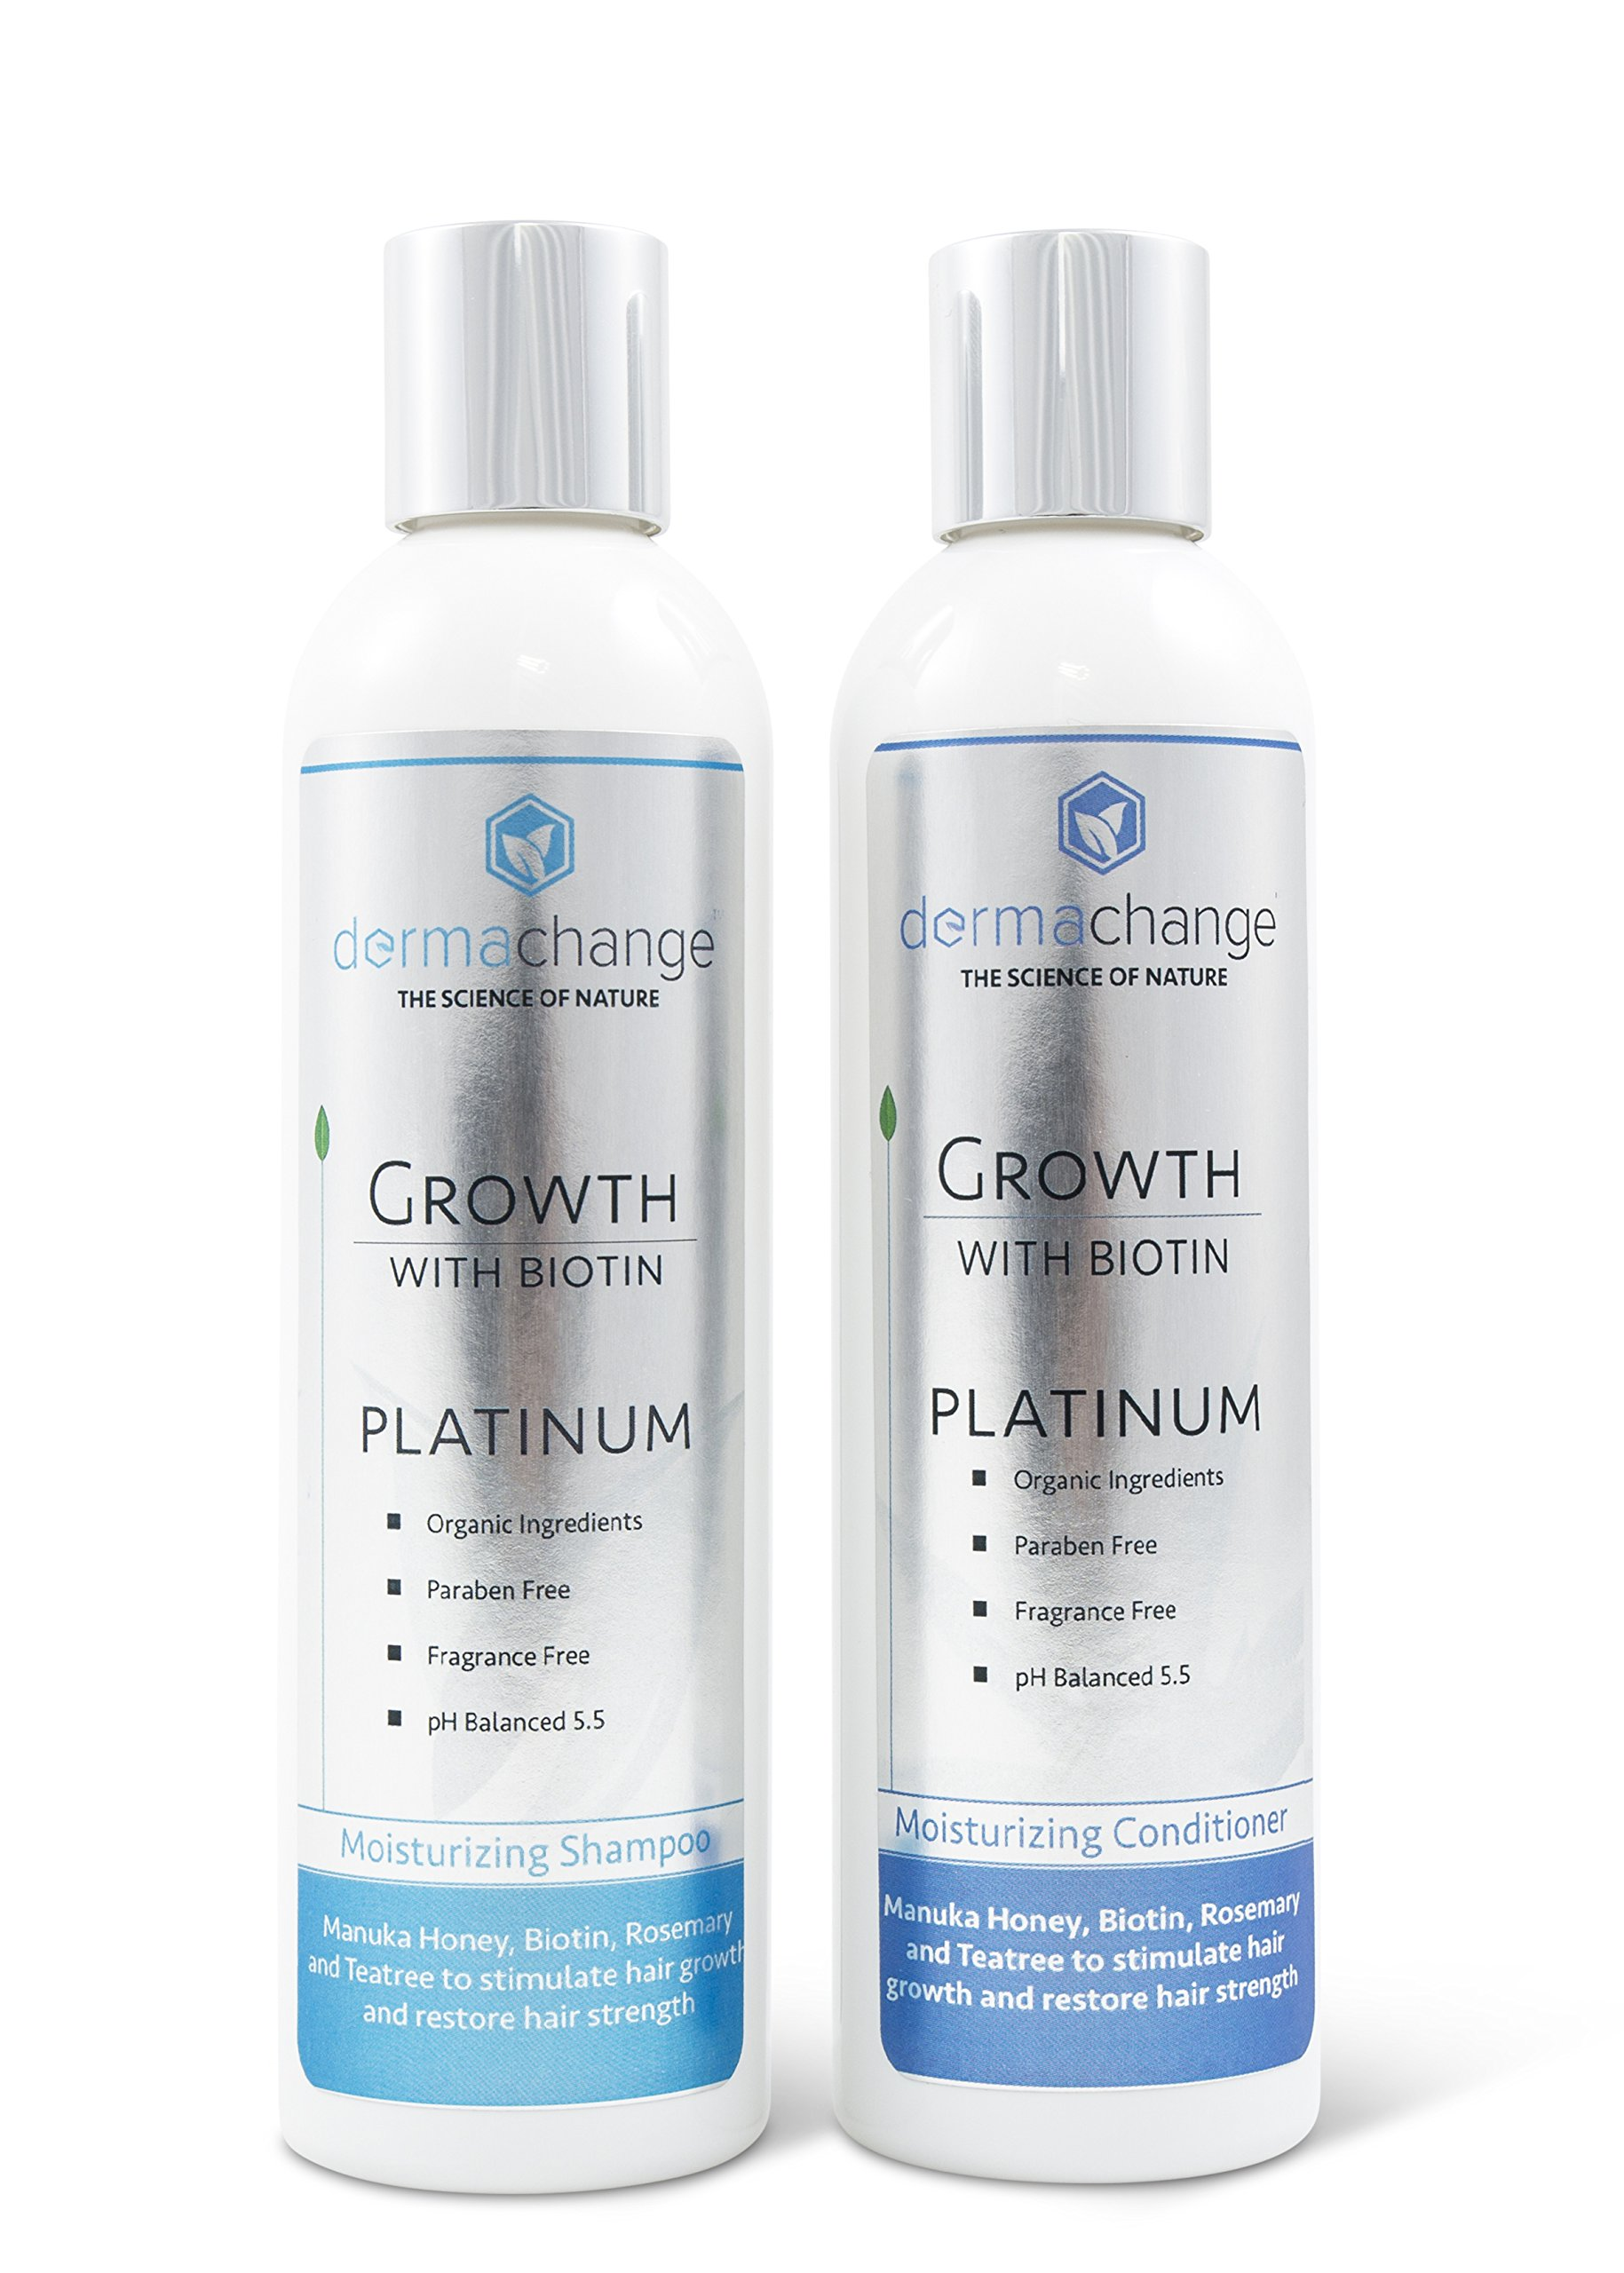 Organic Argan Oil and Biotin Hair Growth Shampoo Conditioner Set - Sulfate Free - Support Regrowth, Volumizing & Moisturizing, Soft on Curly & Color Treated Hair For Men and Woman